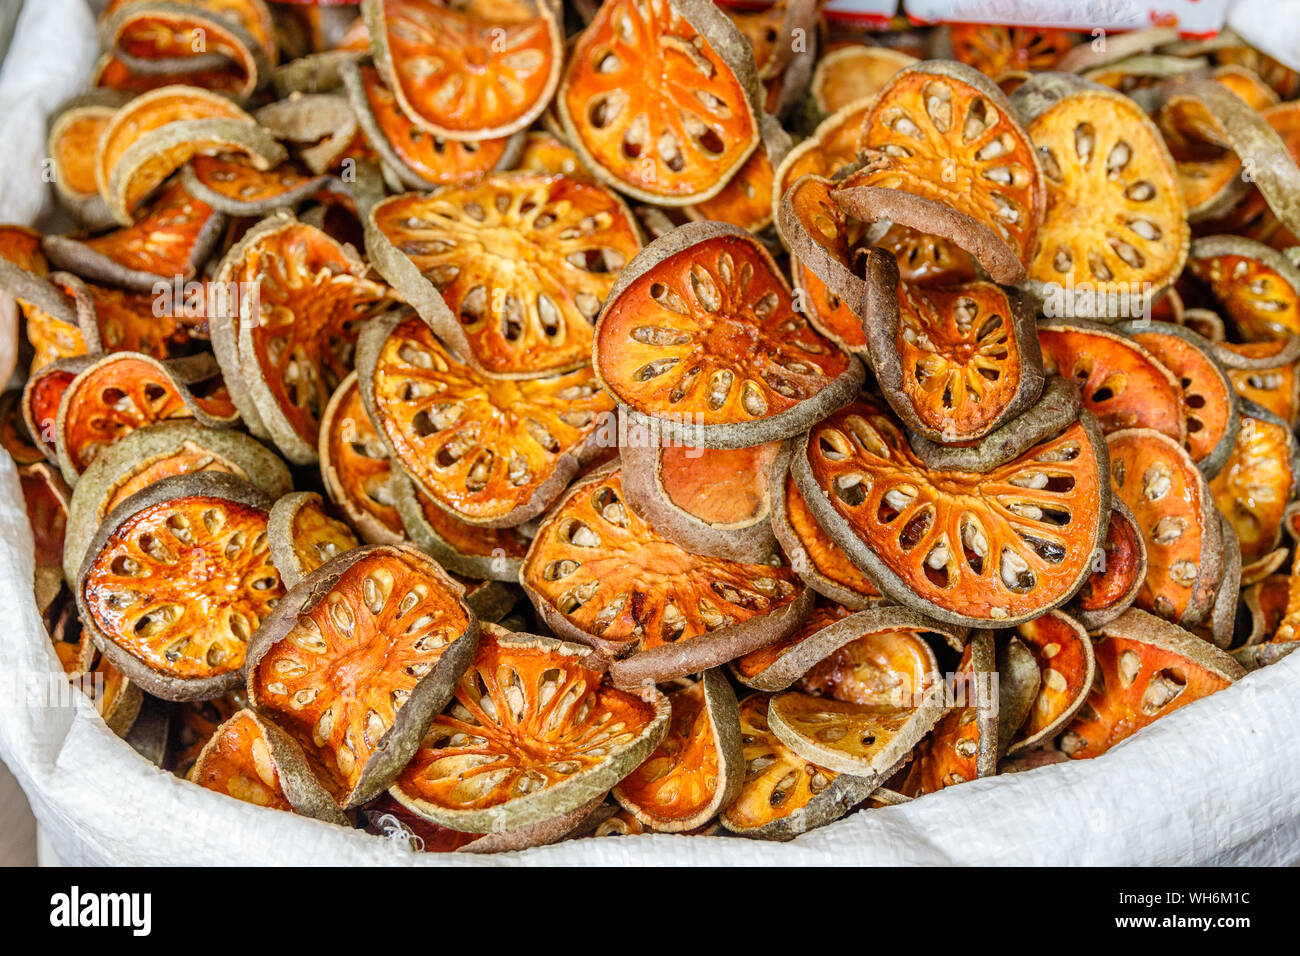 Sliced and sun-dried Aegle marmelos or bael fruit in a bag at a street market in Bangkok Chinatown. Thailand. Stock Photo